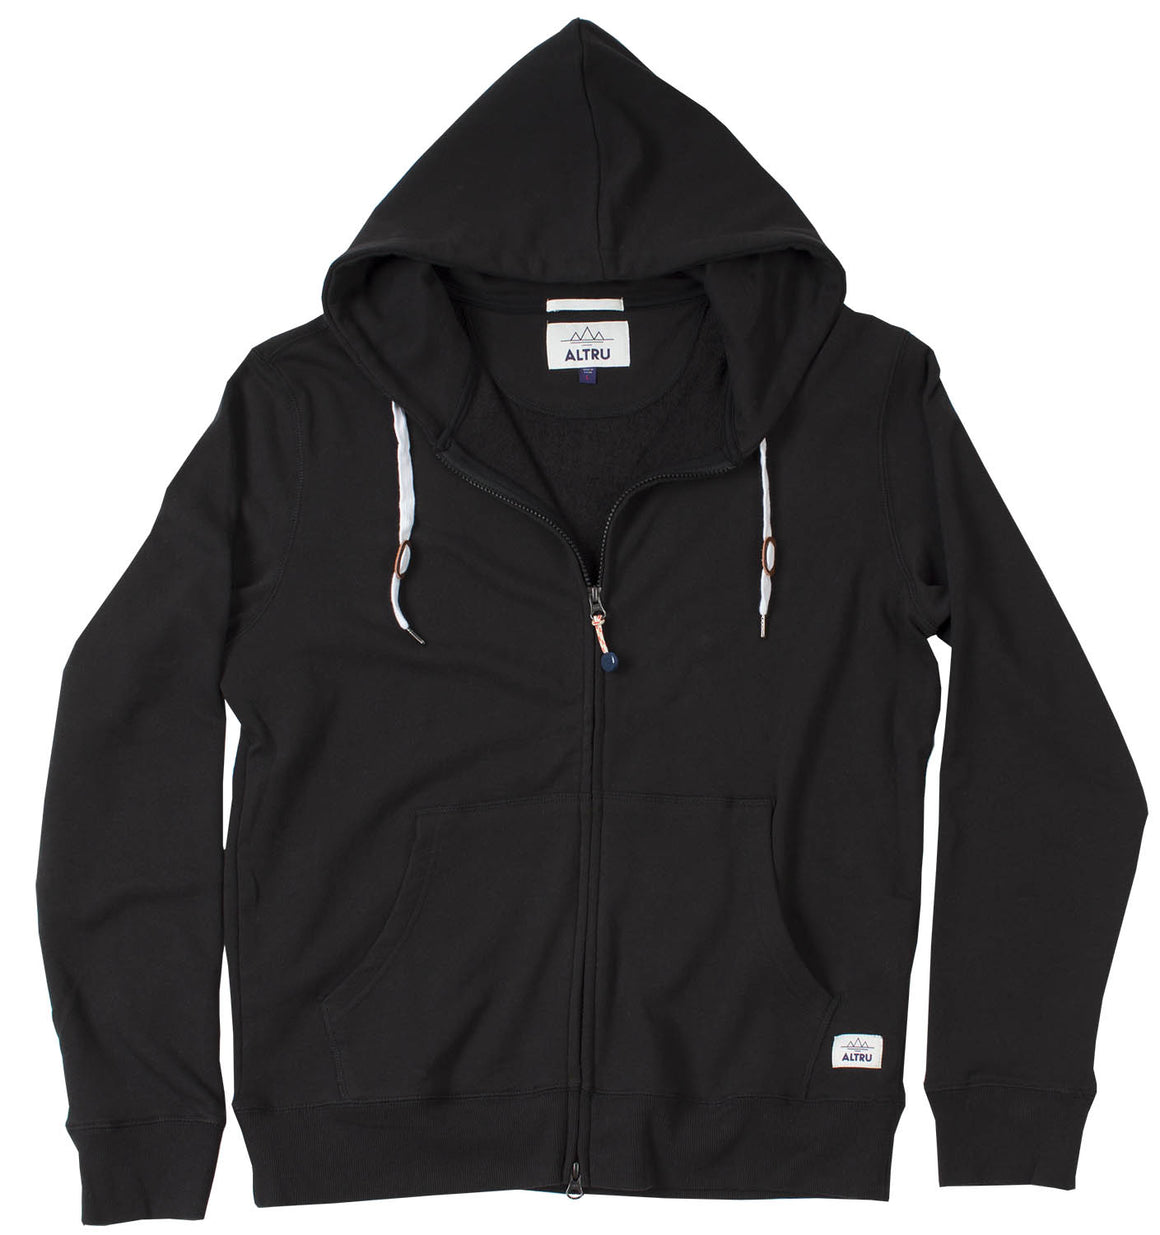 BLACK ZIP-UP CUSTOM FIT HOODIE